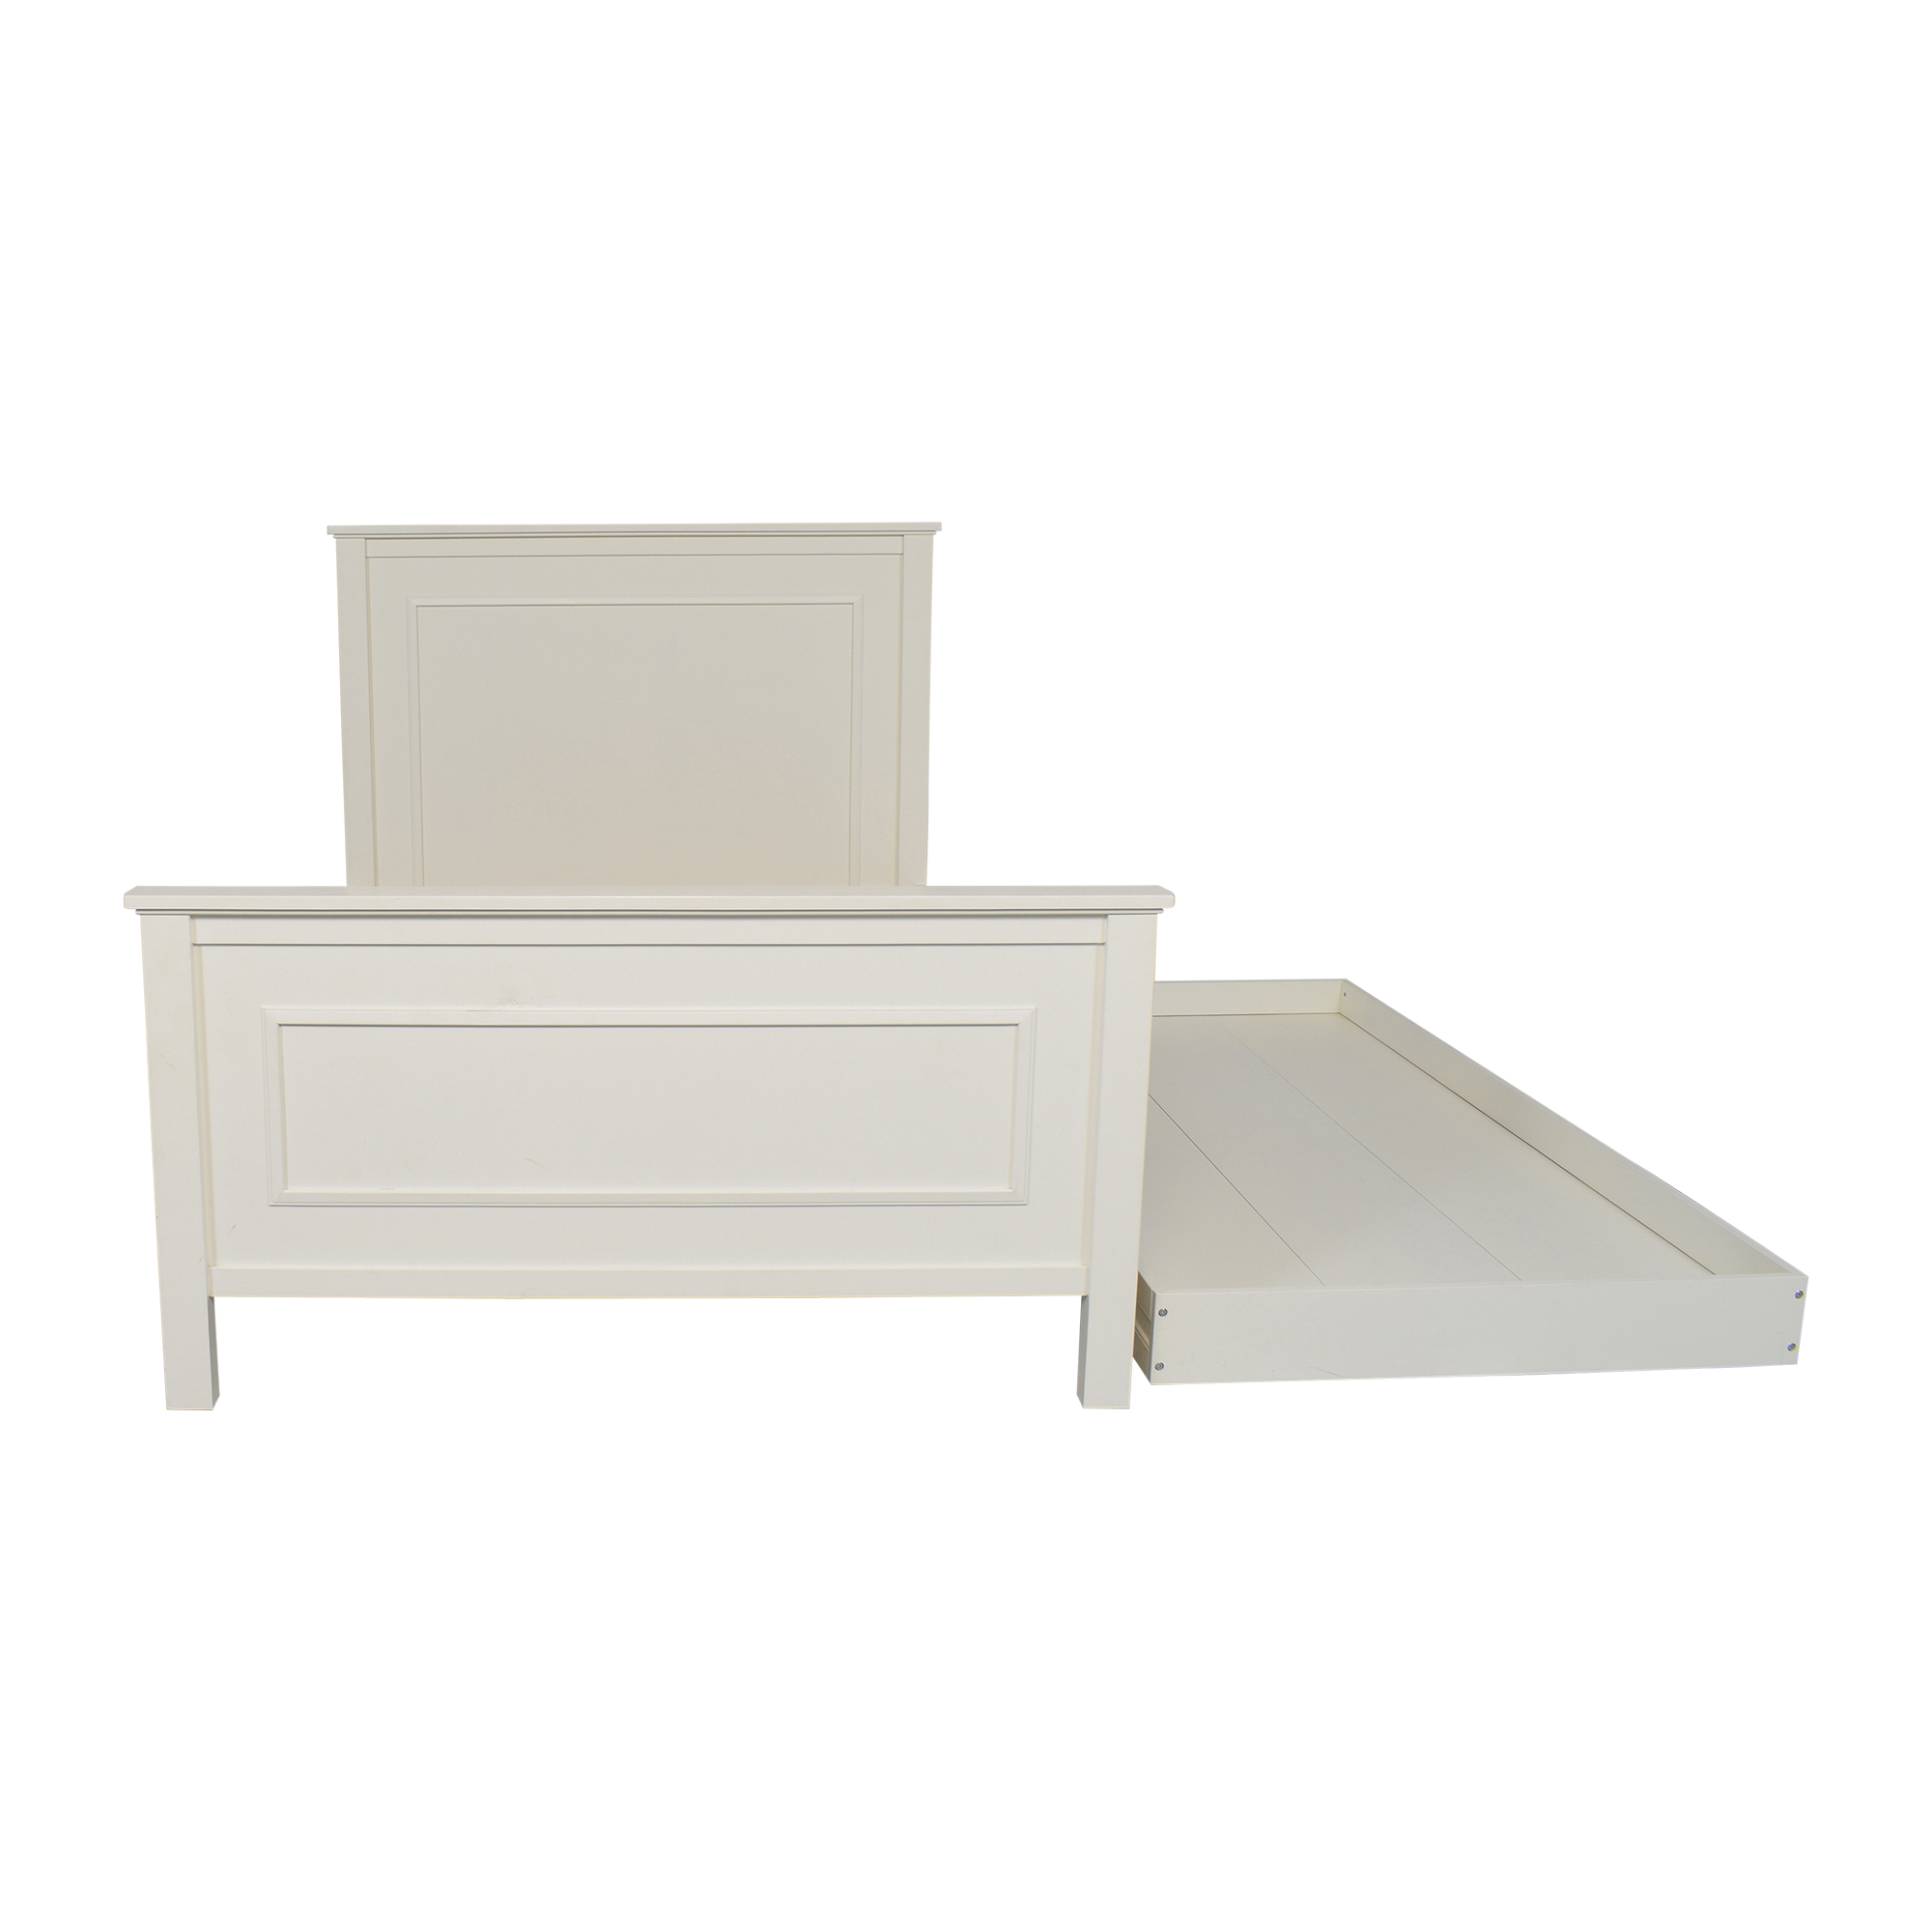 Pottery Barn Kids Pottery Barn Kids Fillmore Bed with Trundle coupon